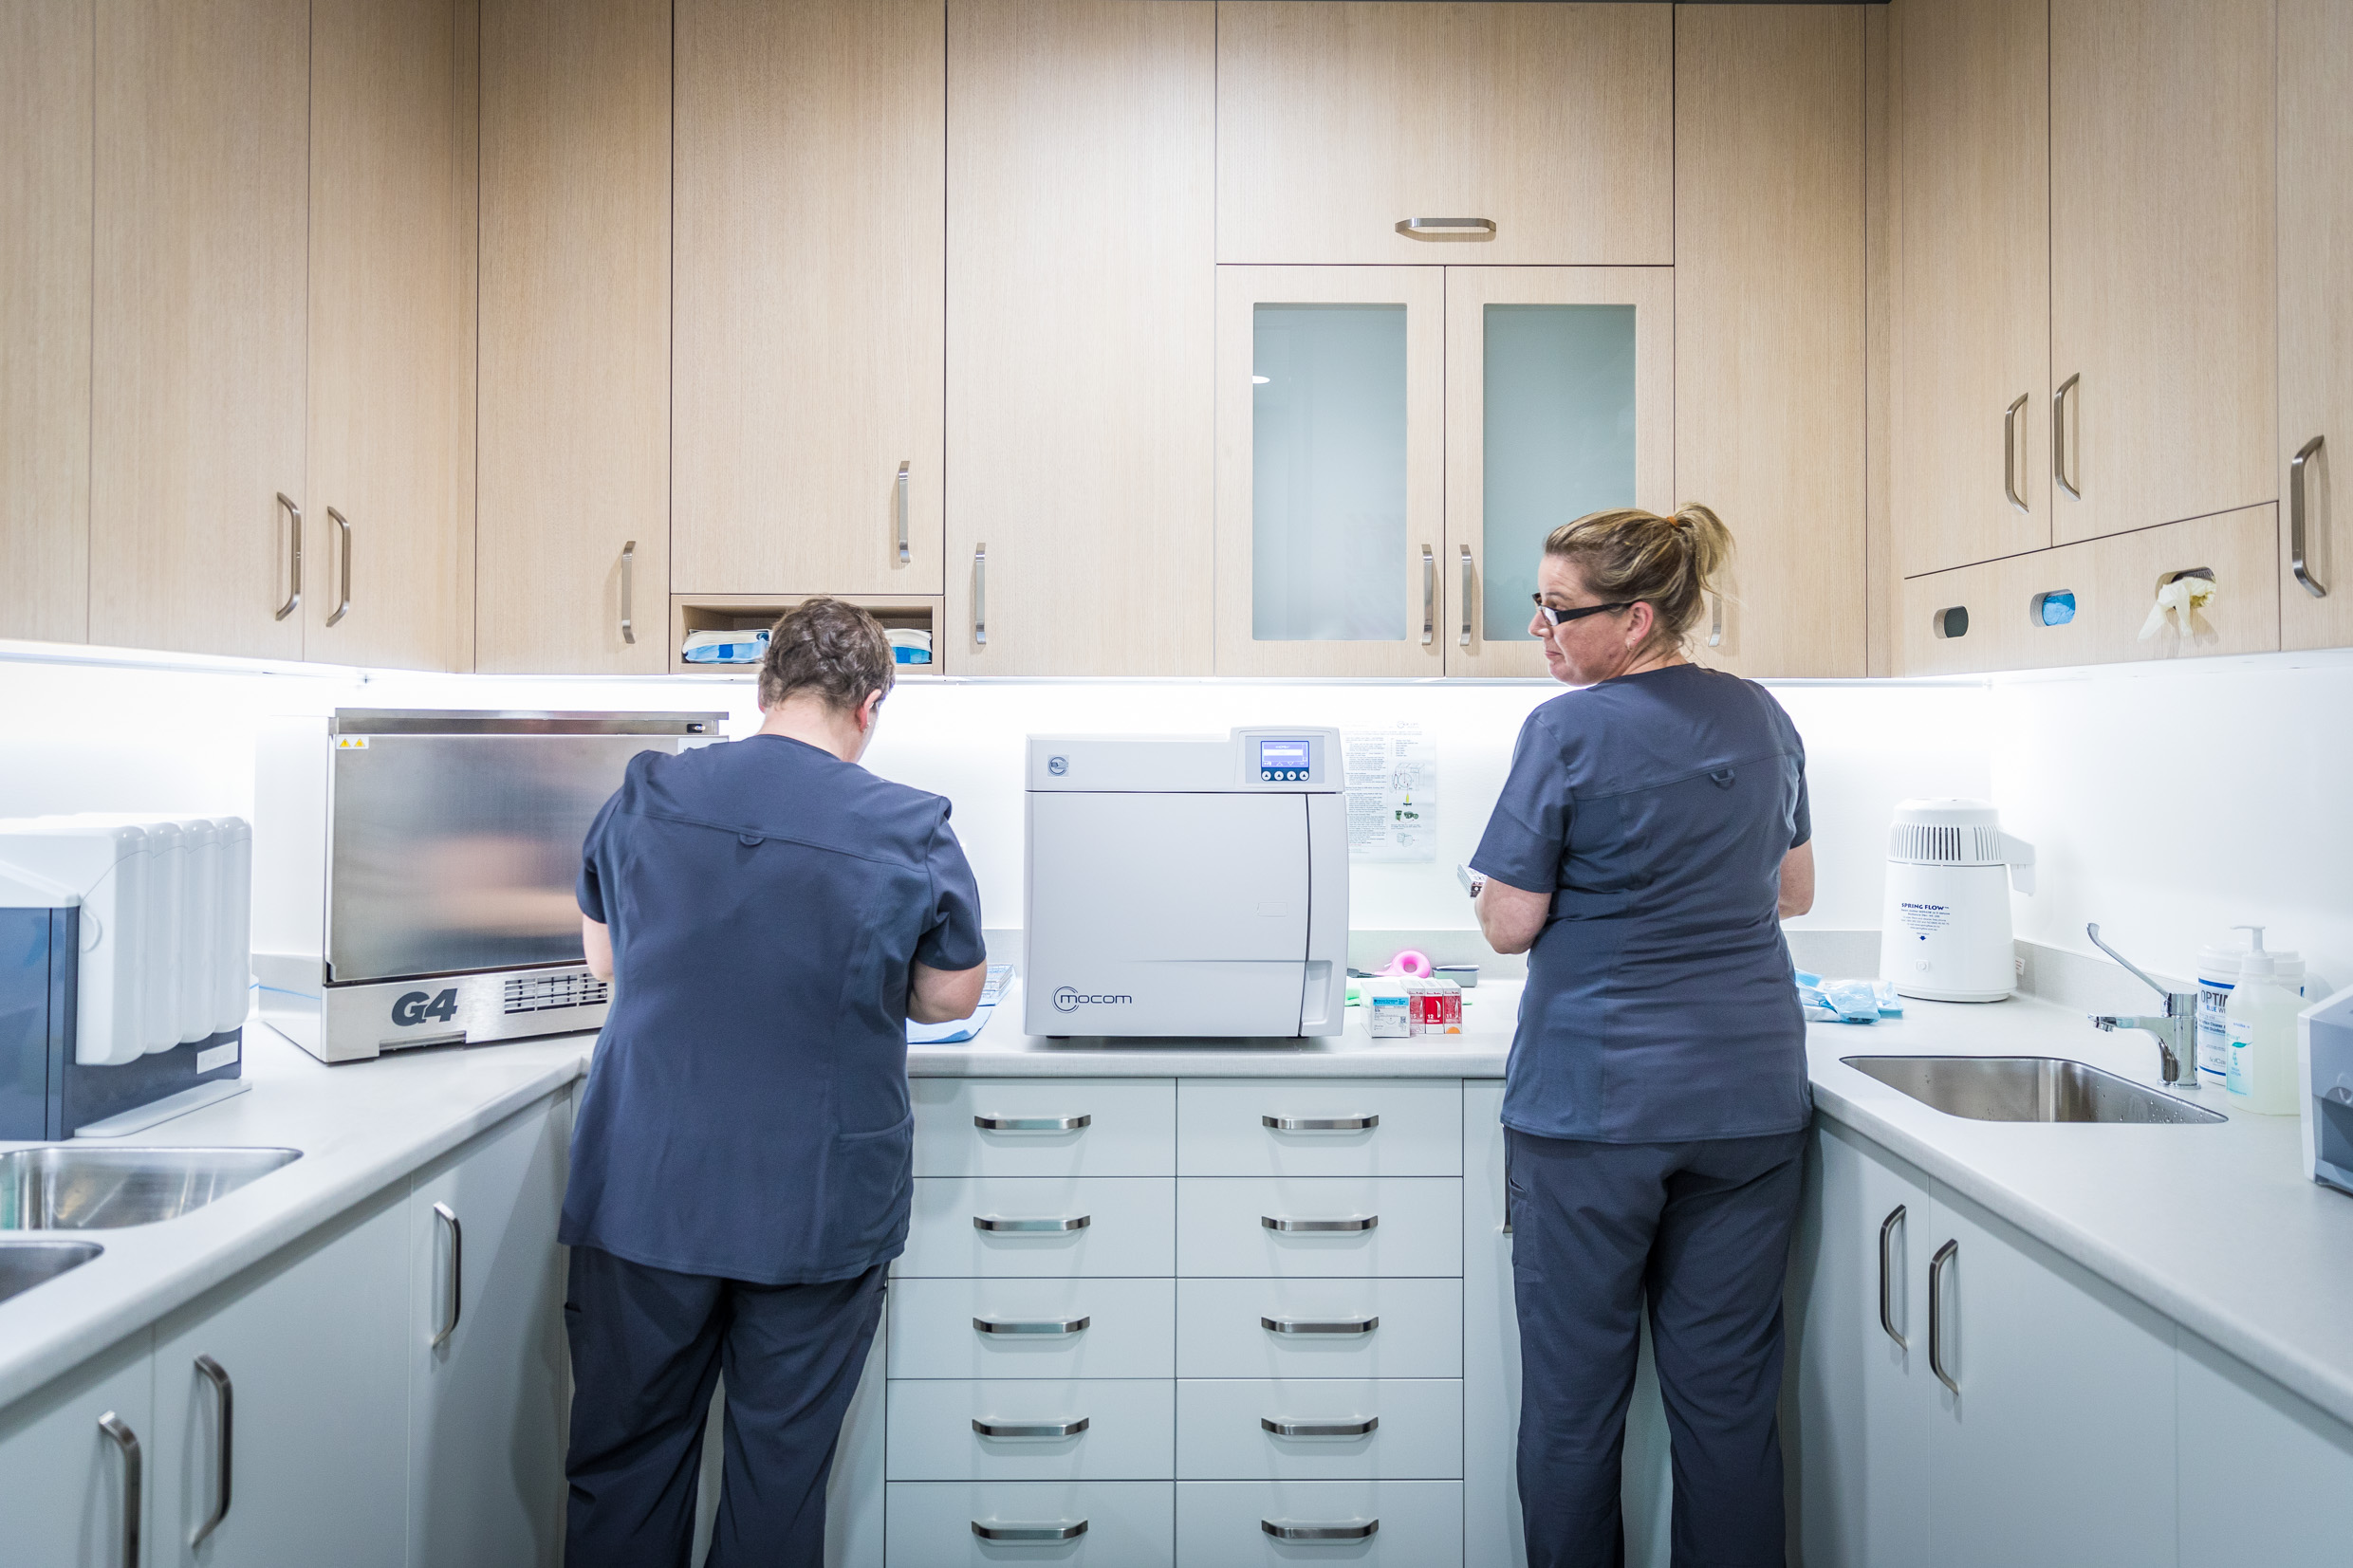 An absolutely vital part of the practice that people usually don't get to see -The sterilising room. It's state of the art and our cross infection control is meticulous.